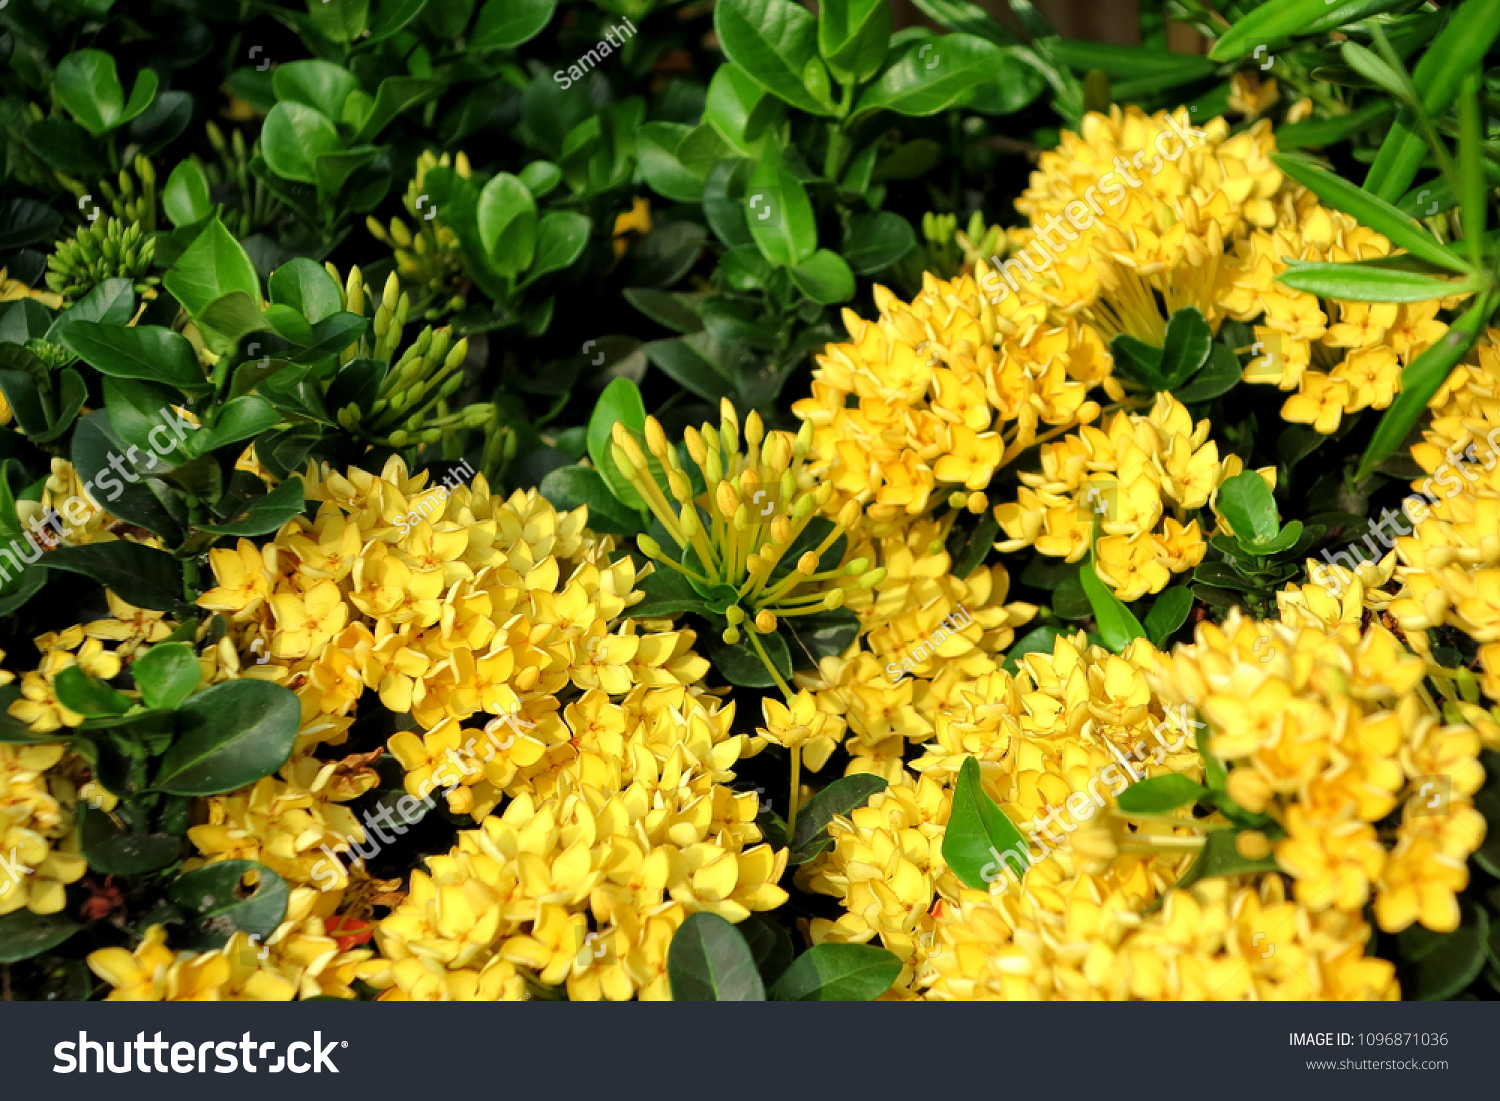 Yellow ixoras west indian jasmine flower stock photo edit now yellow ixoras west indian jasmine flower with green leaf izmirmasajfo